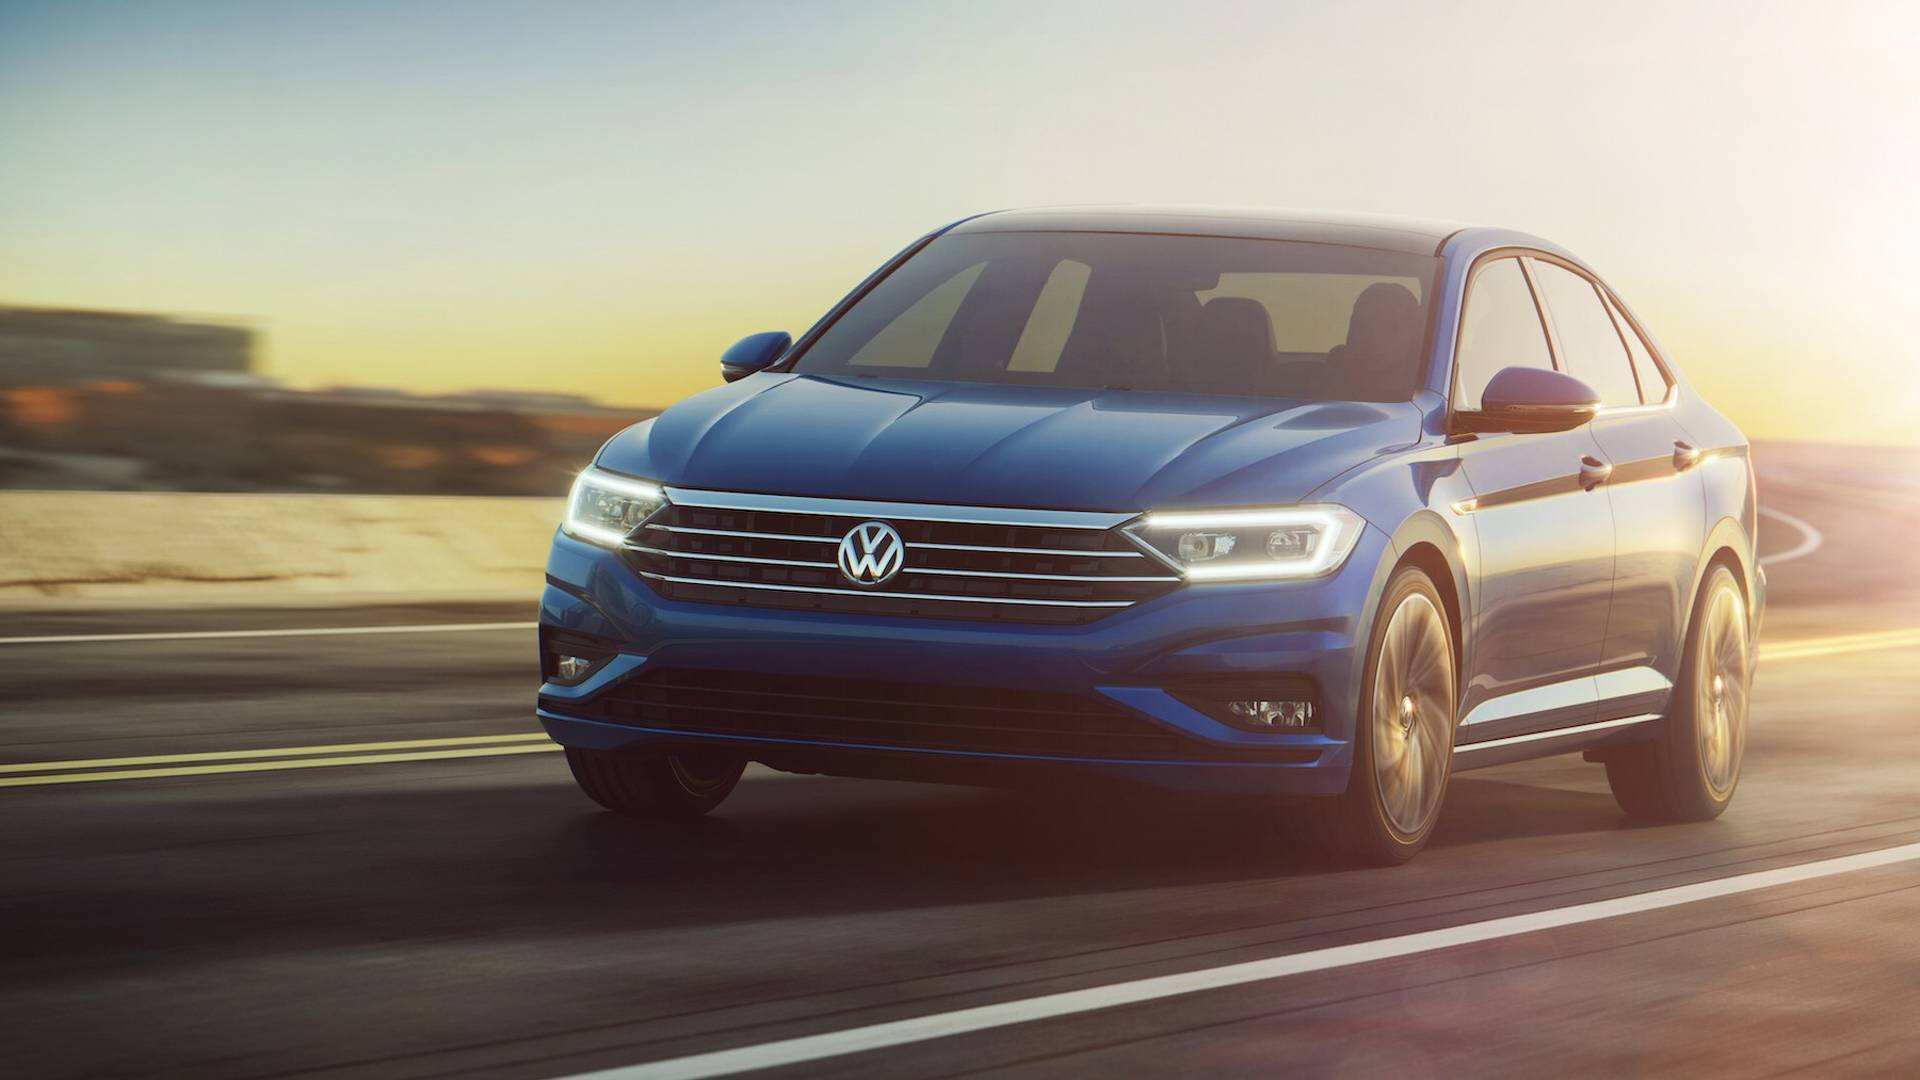 14 All New Volkswagen Lancamento 2019 Price History by Volkswagen Lancamento 2019 Price